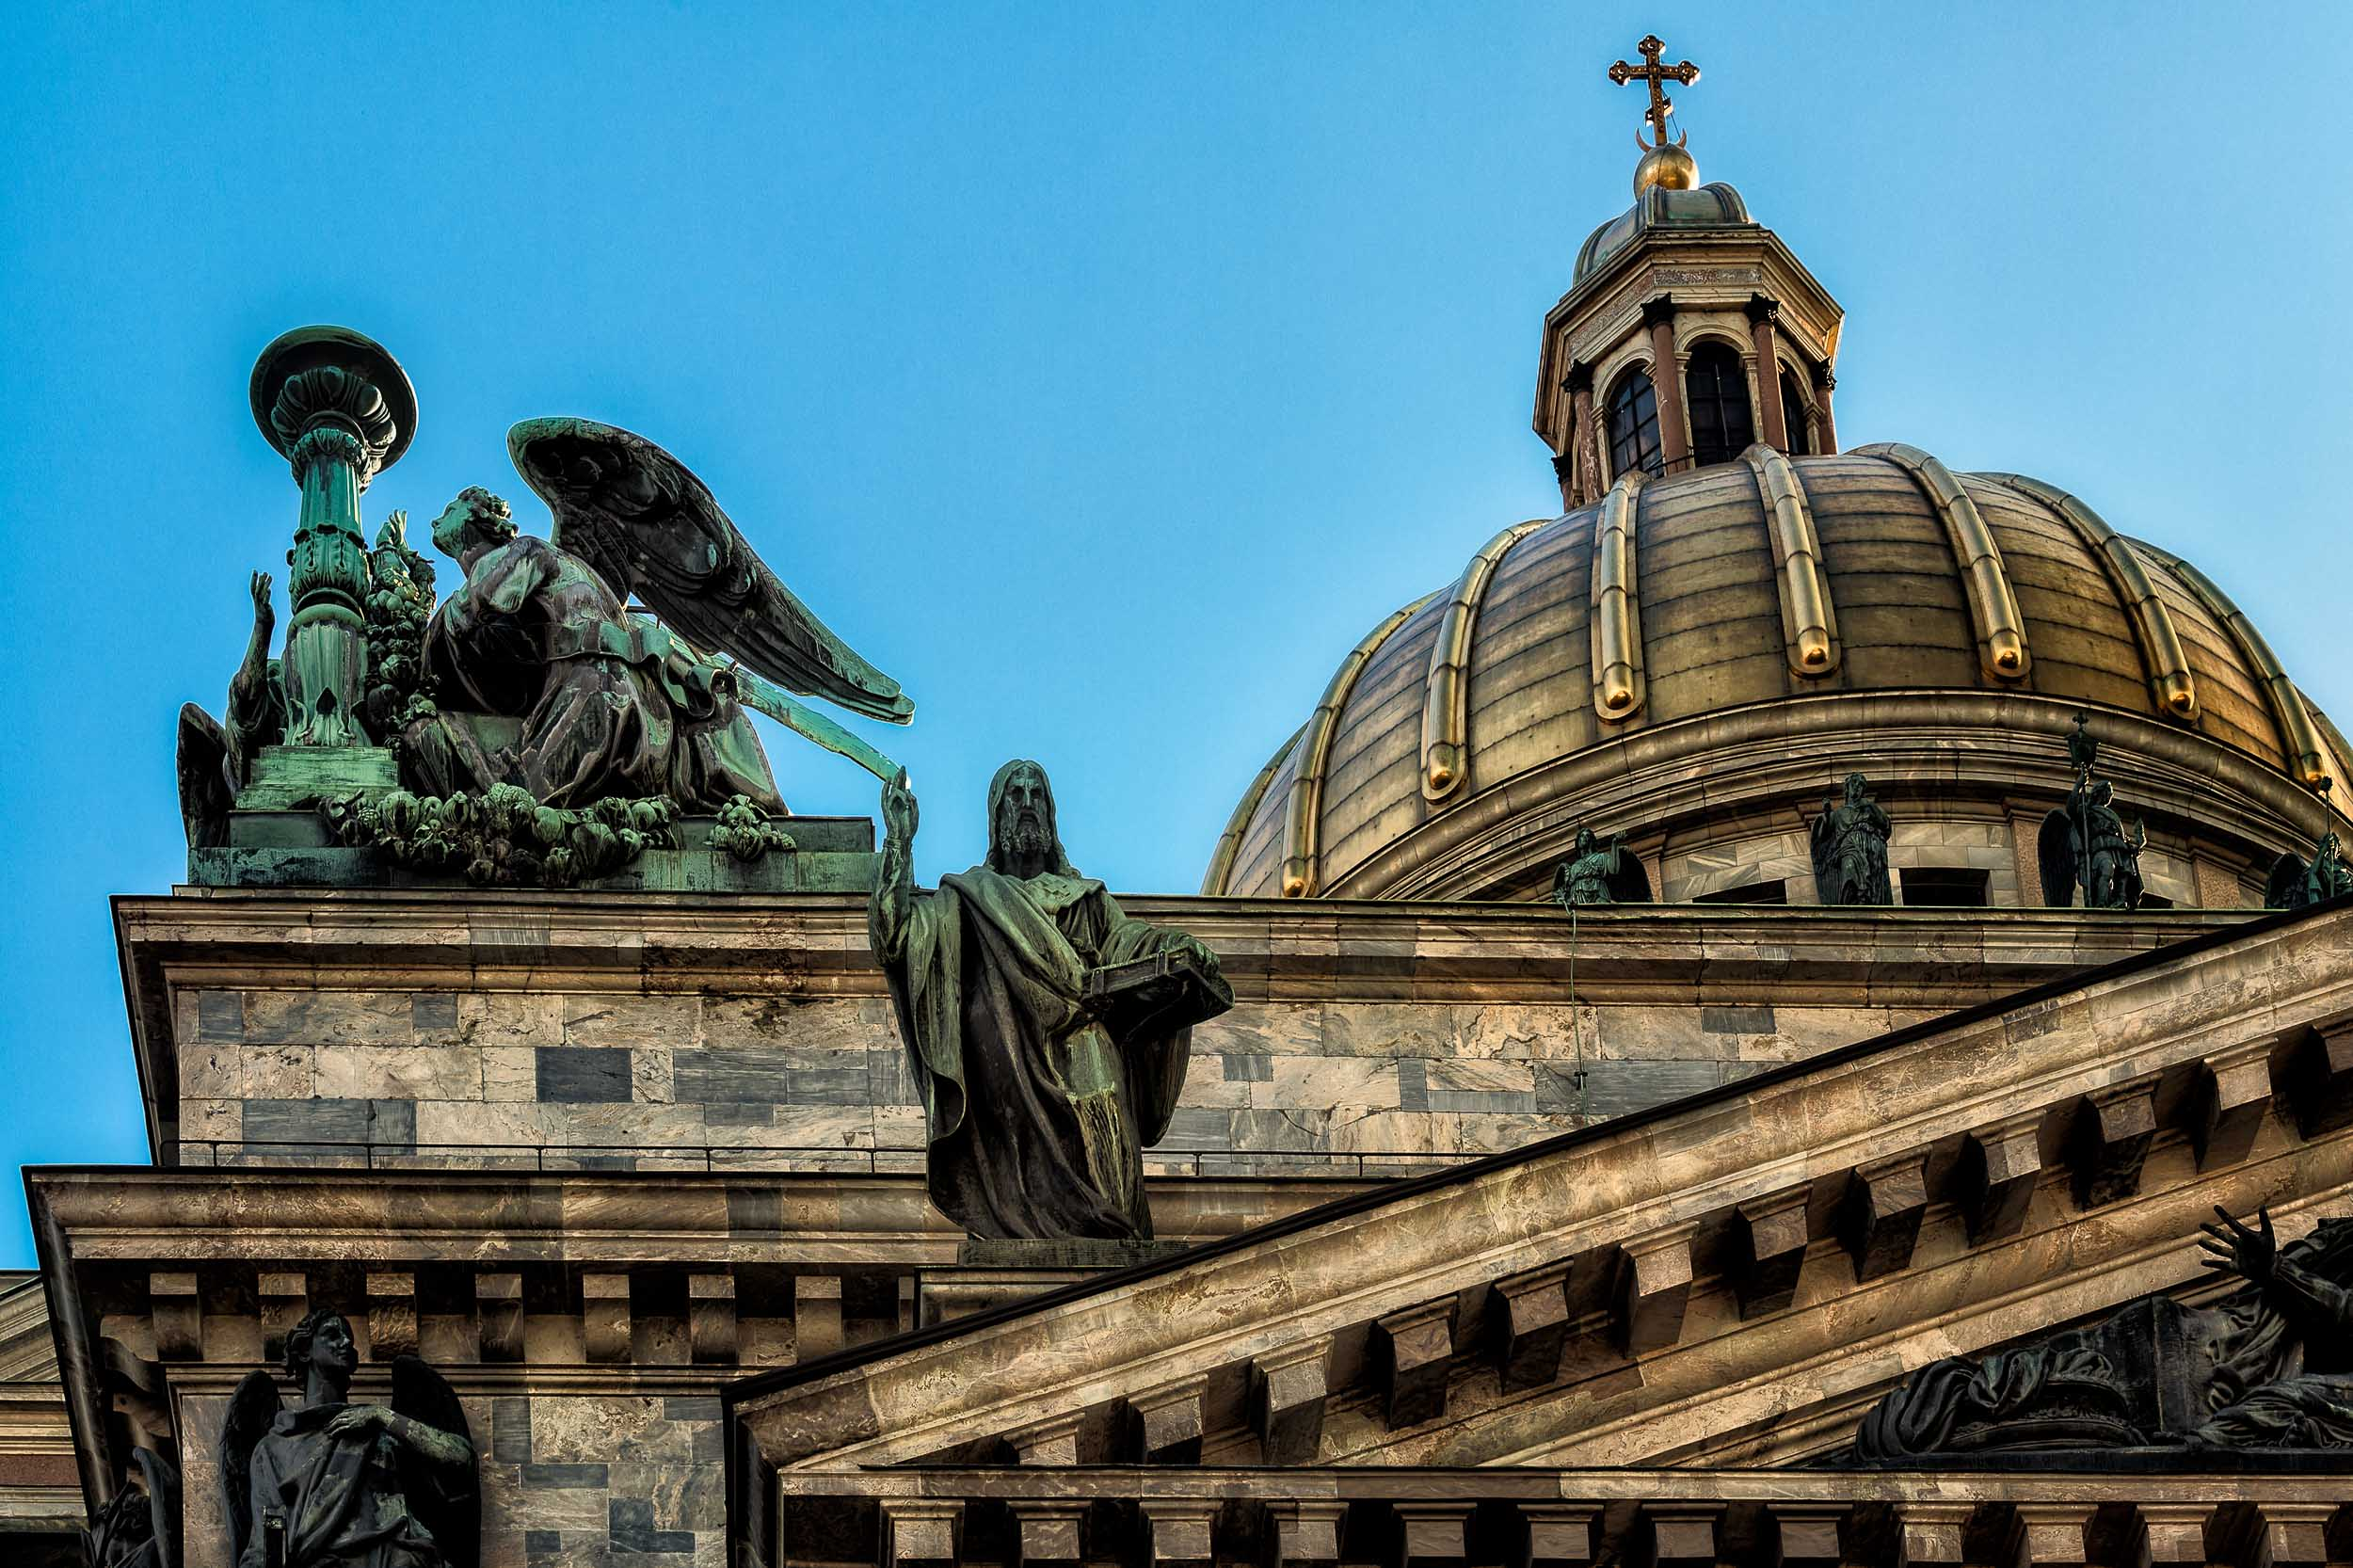 A dramatic view of the    dome and statues    at    St. Isaac's Cathedral    in    St. Petersburg, Russia   .